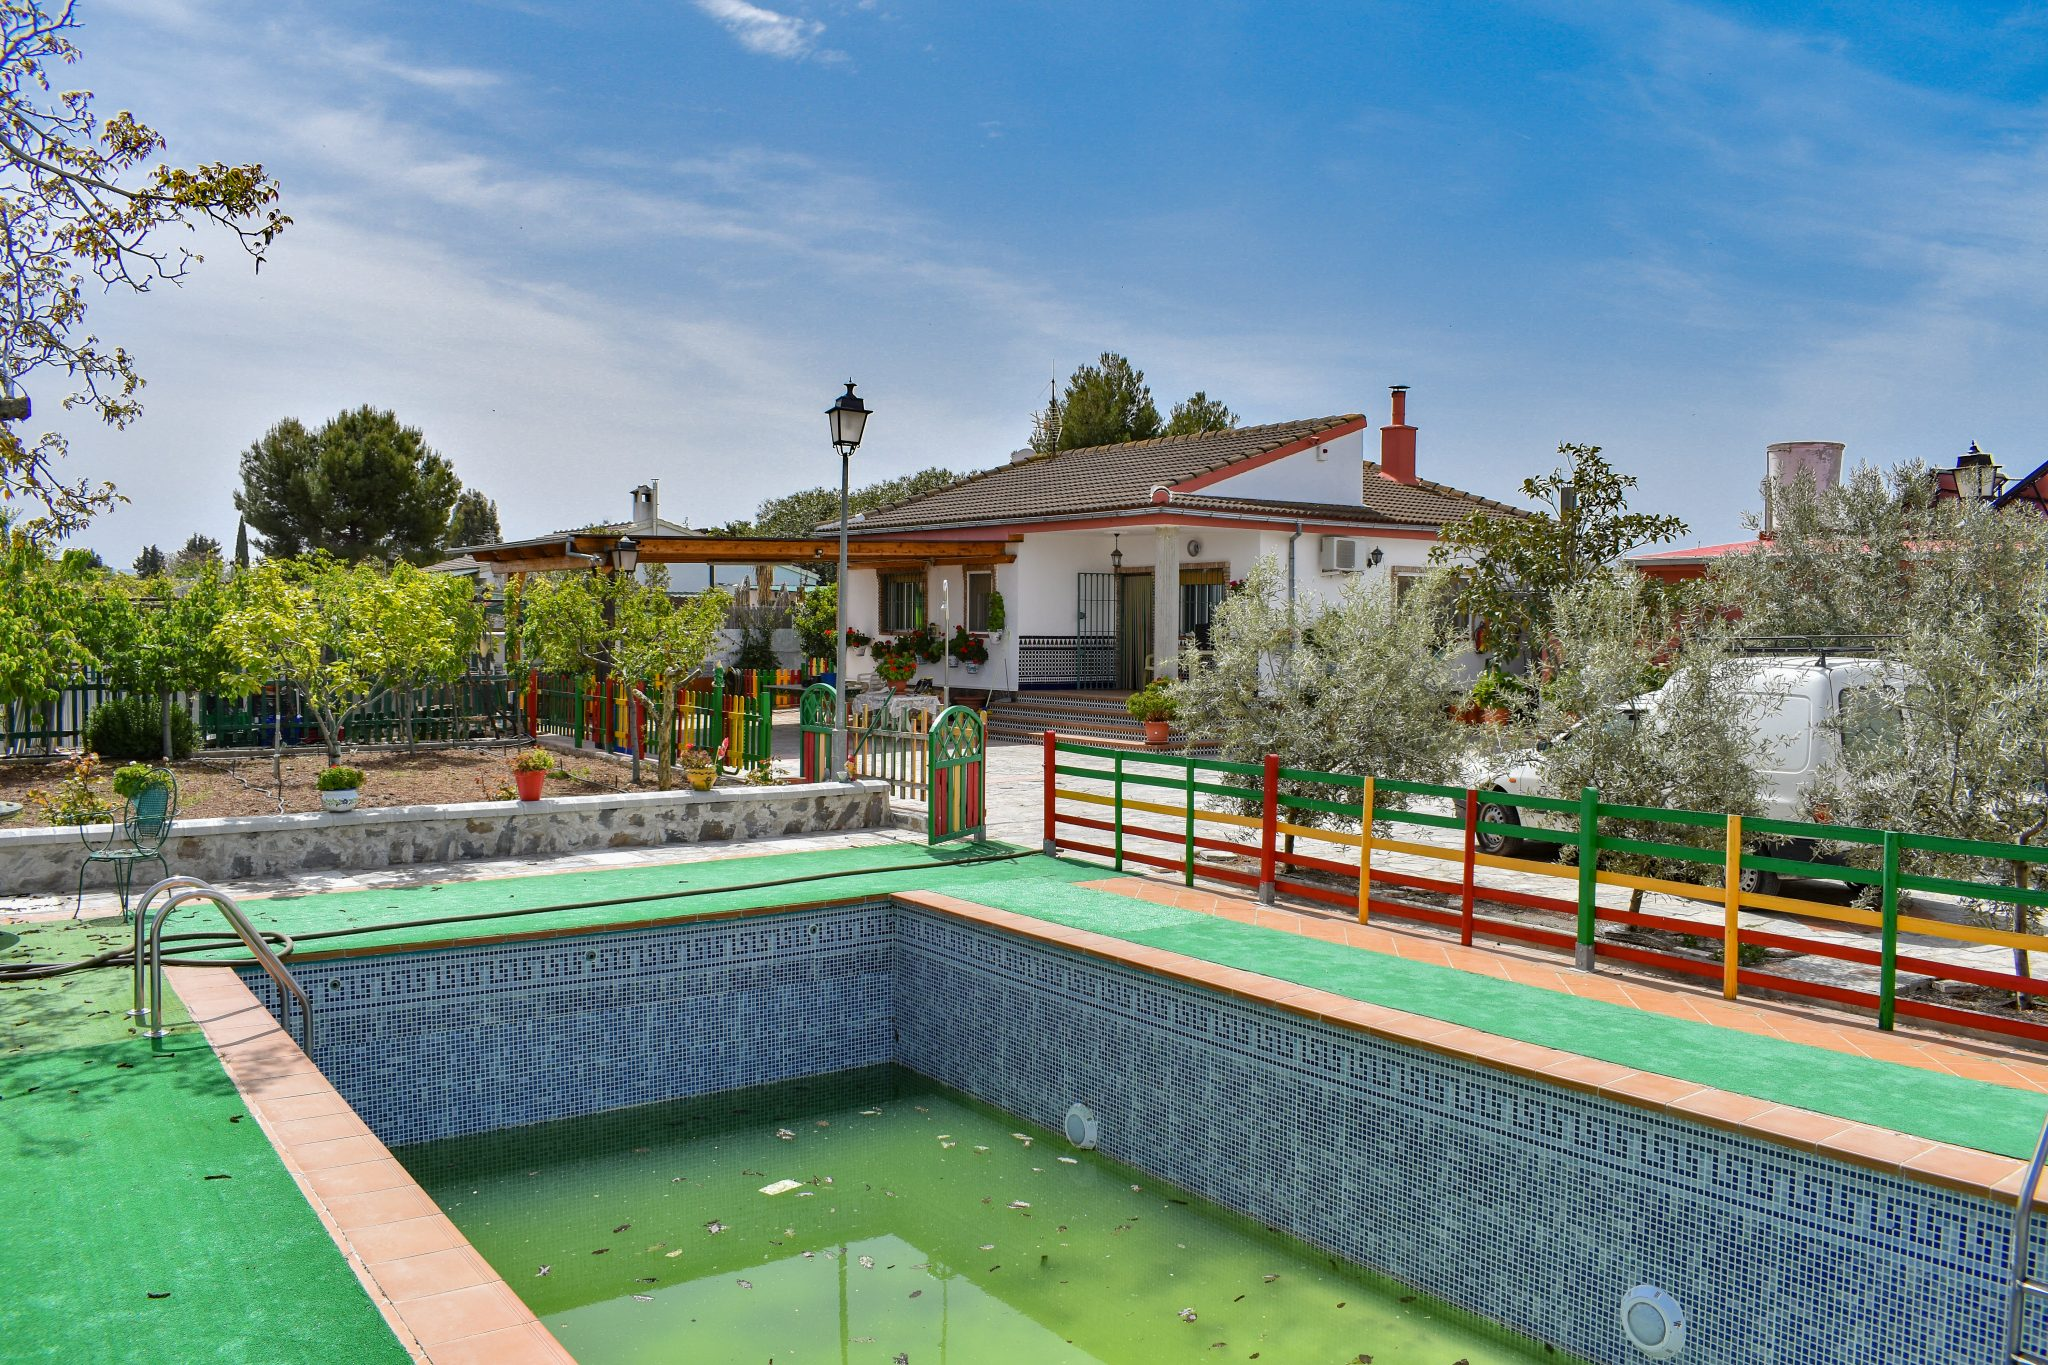 Granada estate agency are proud to present for sale a well presented detached villa enjoying 3 double bedrooms, 2 bathrooms, central heating, detached garage, vegetable patch and 8x4m swimming pool. Ideally located in Morelada de zafayona, only 25 minutes drive from Granada city centre.